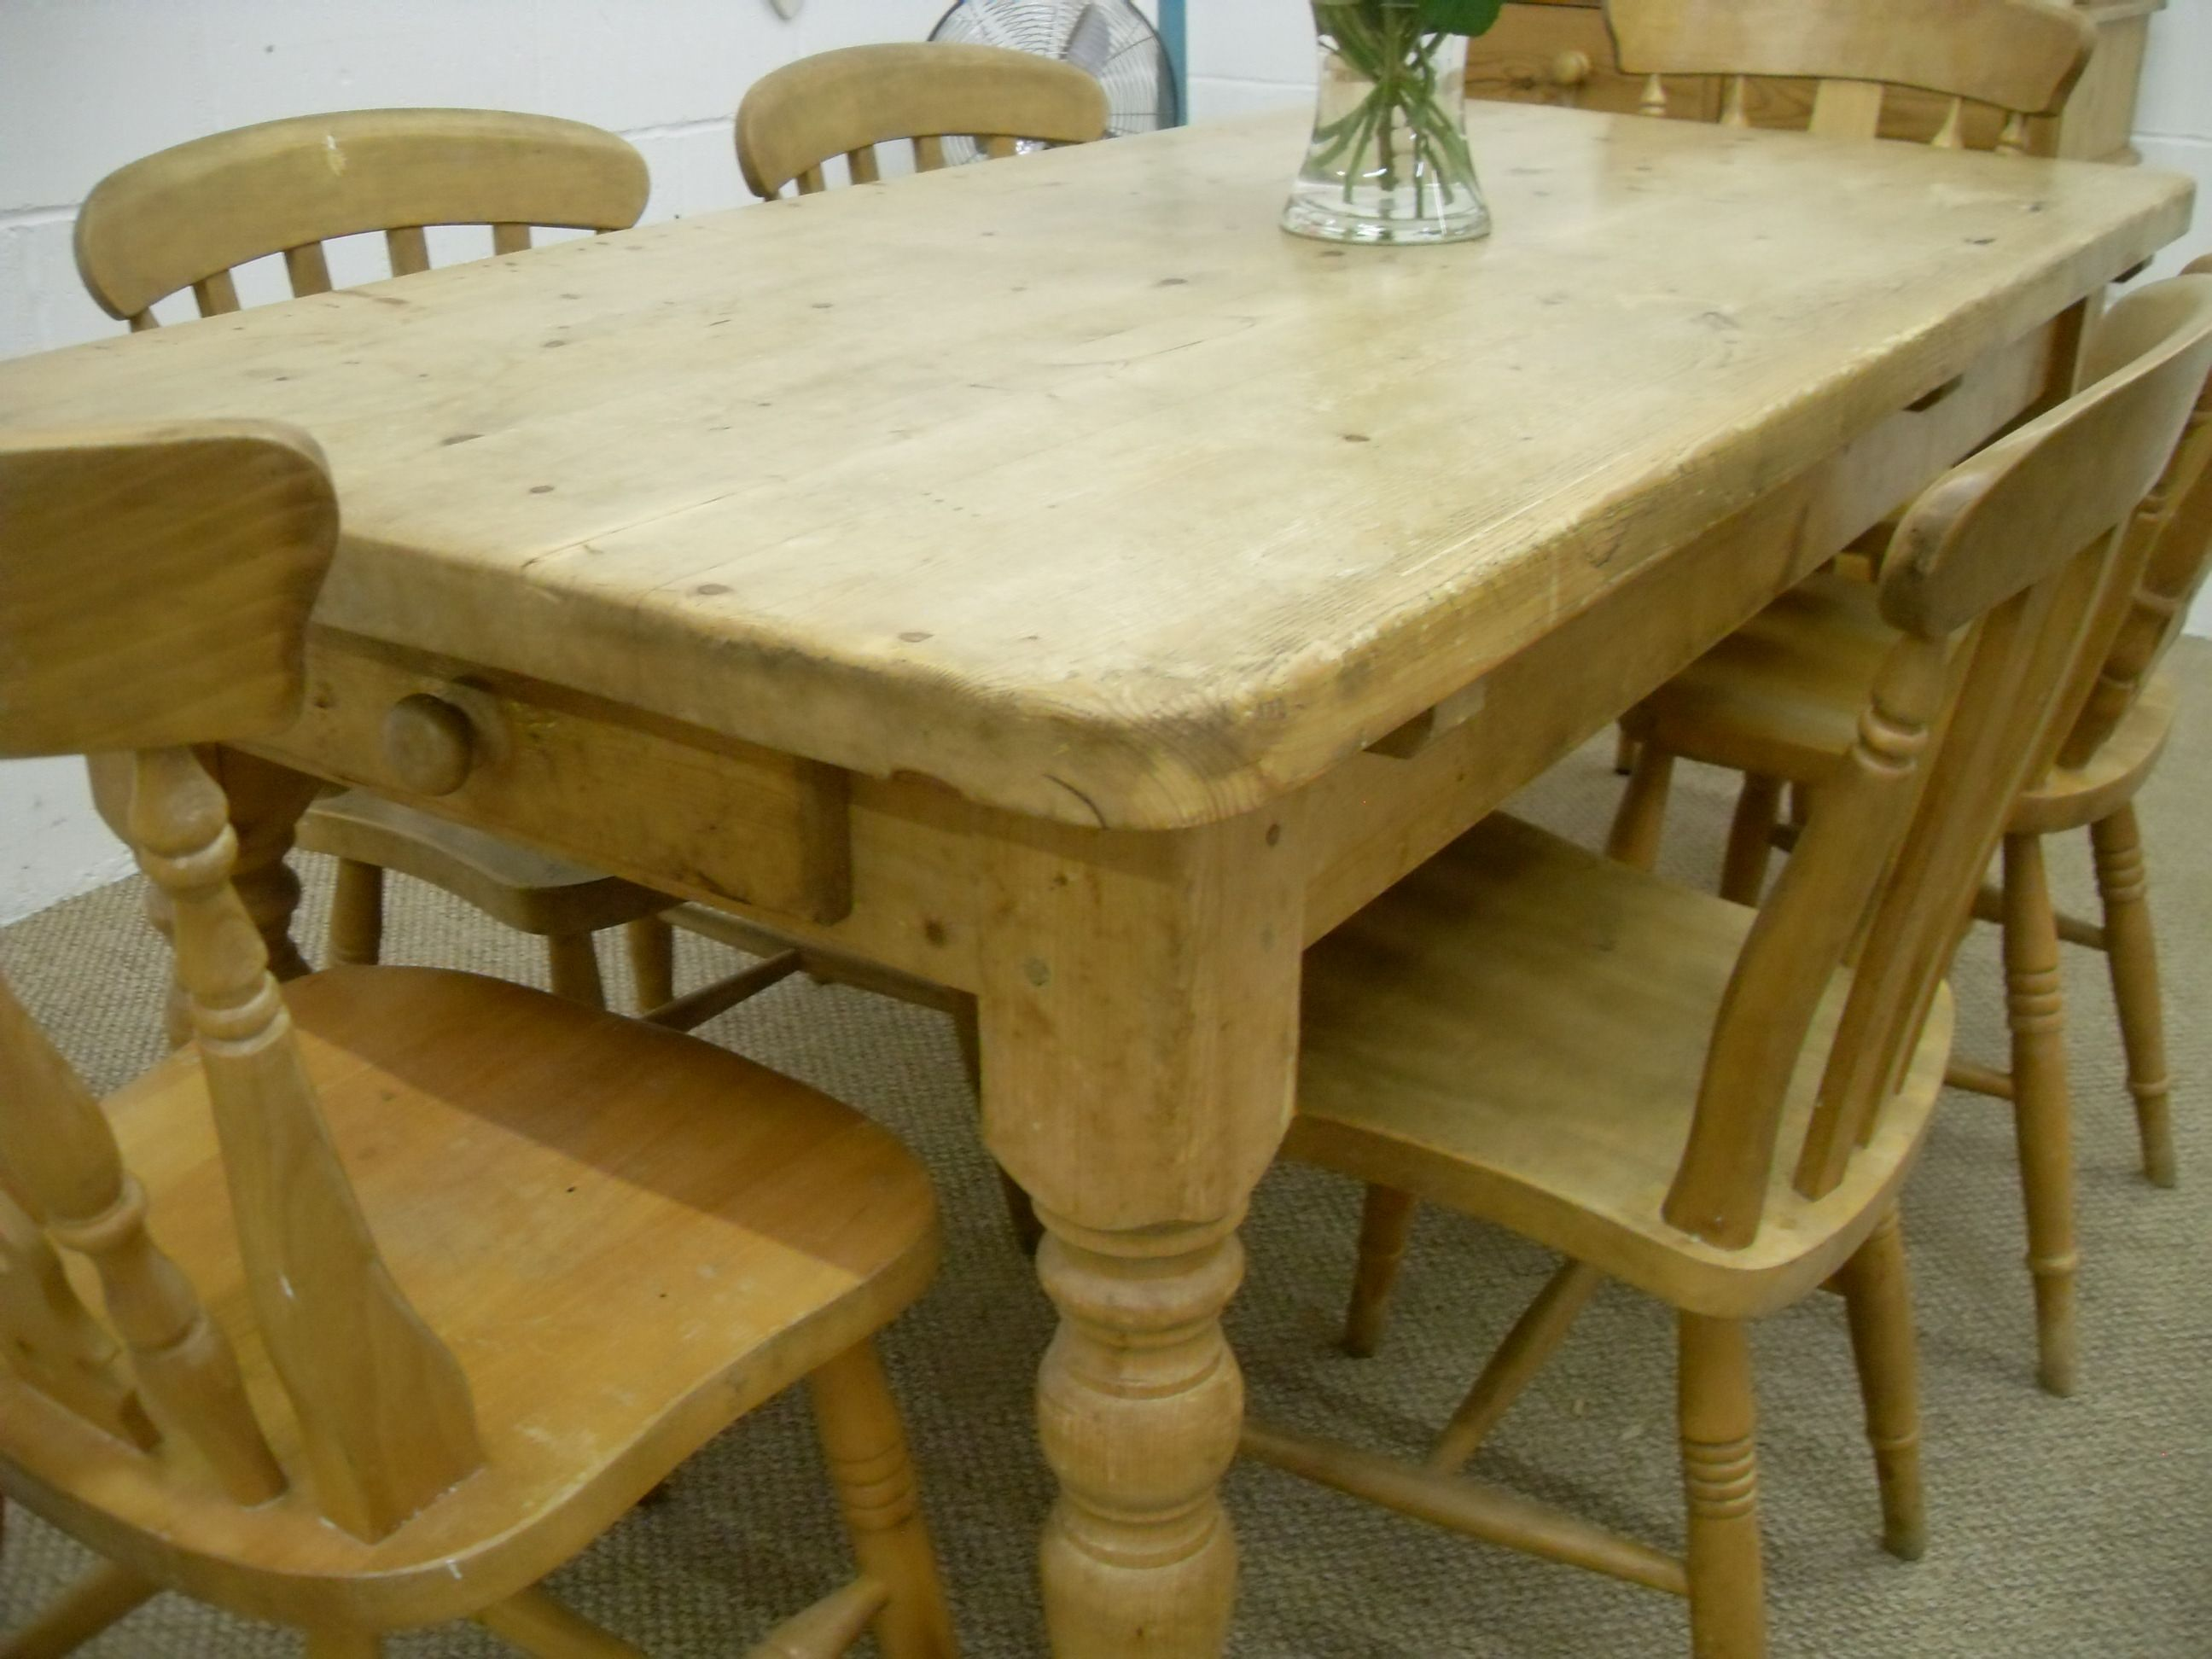 Very Old Rustic Farmhouse Solid Pine Kitchen Table 6 Mixed Chairs L 168 W 82 H 79 Cm 295 Http Www Drabtofabfurnitur Pine Kitchen Table Kitchen Table